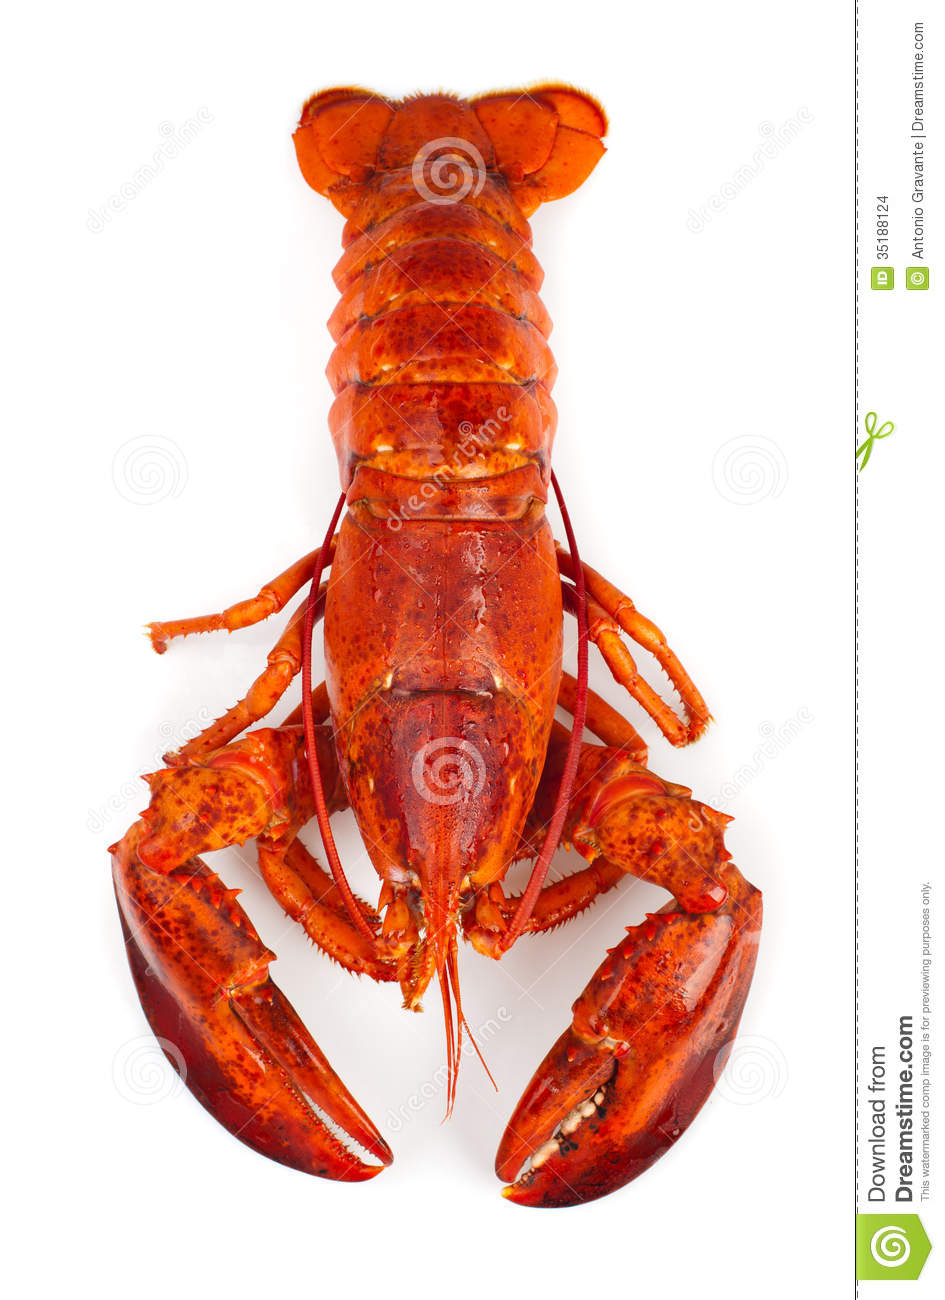 Red Lobster Stock Images - Image: 35188124